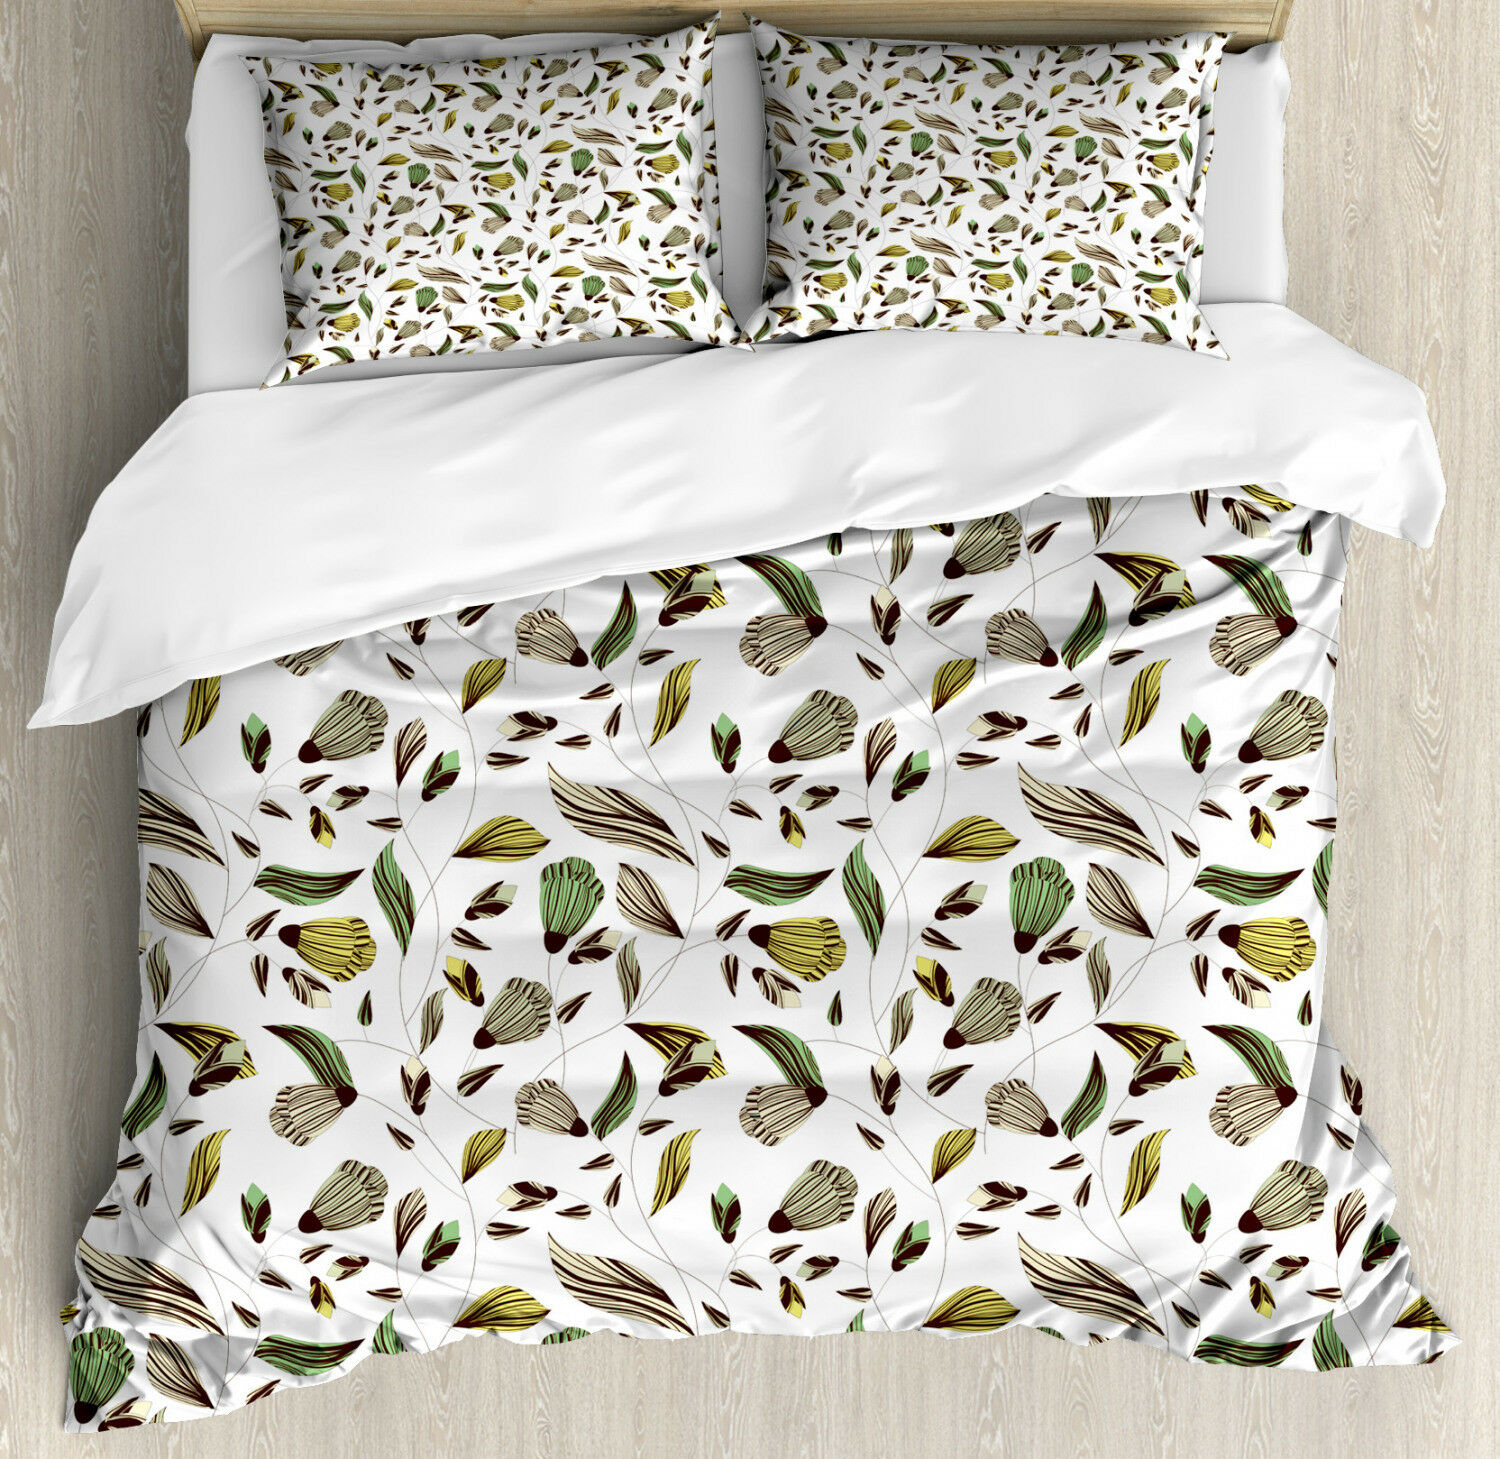 Floral Duvet Cover Set with Pillow Shams Autumn Nature Design Print